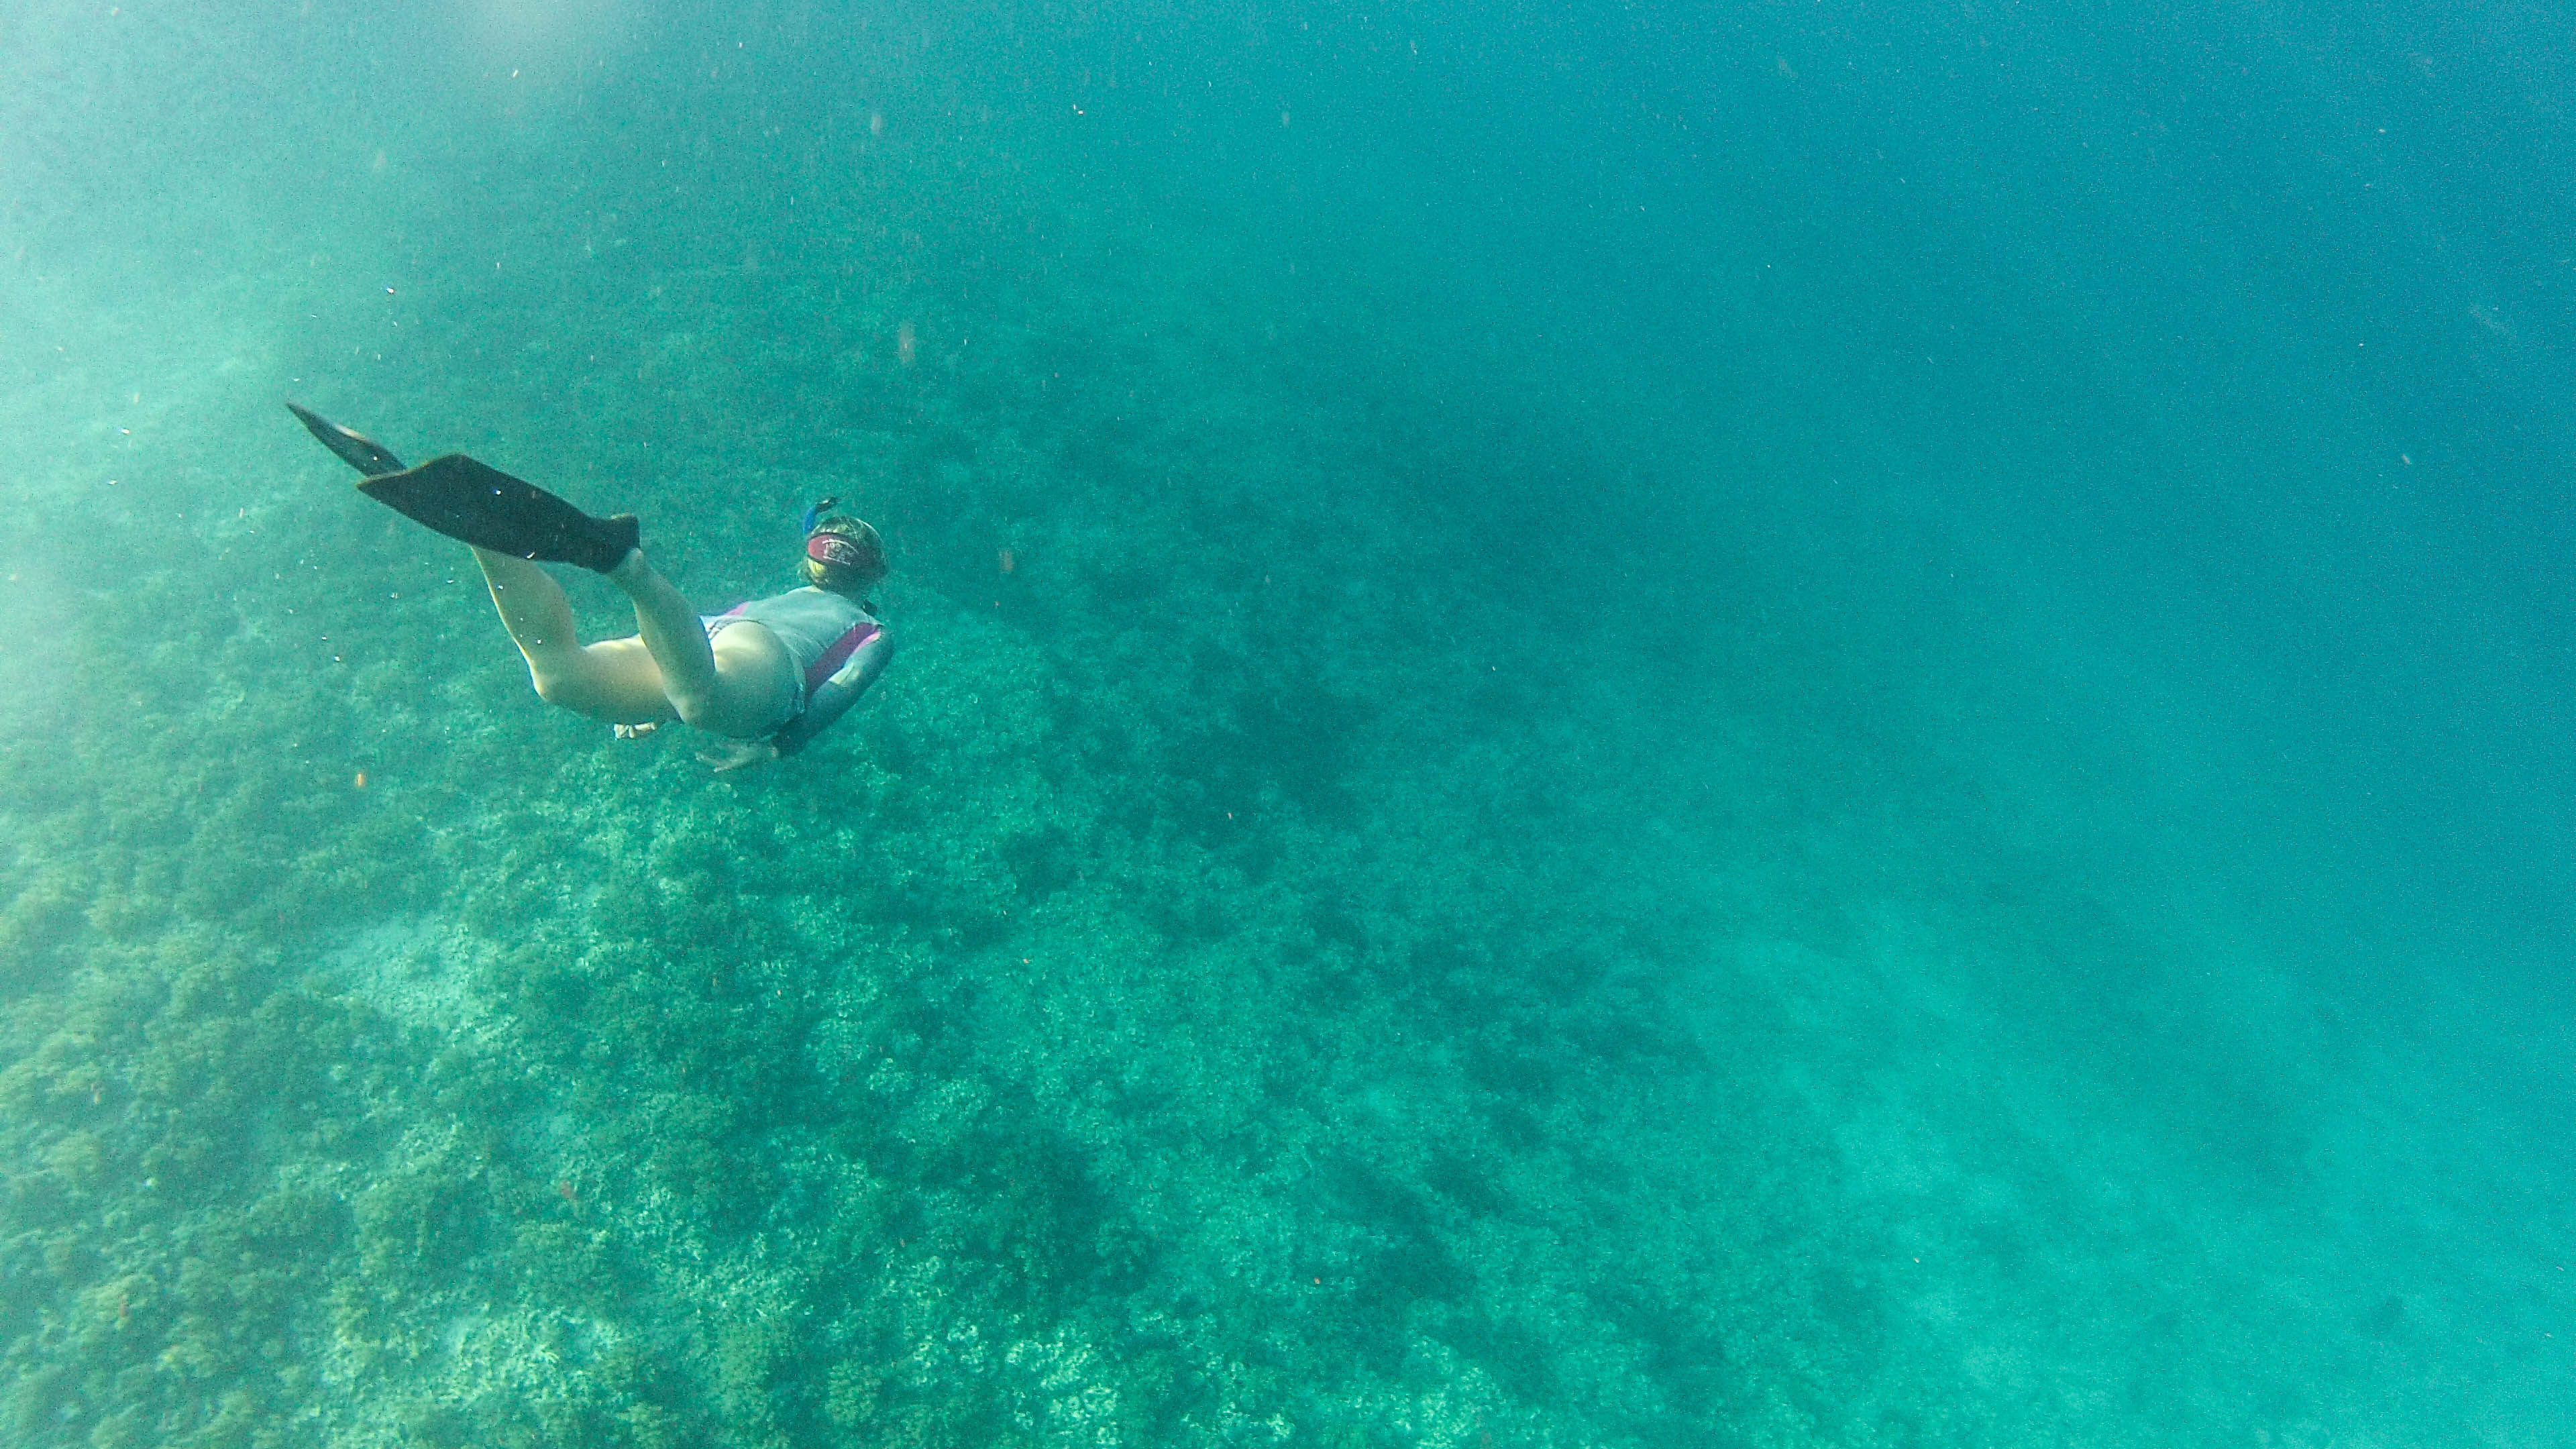 Christine West, Fins to Spurs, Back Underwater, Gili Trawangan, Indonesia, Freedive